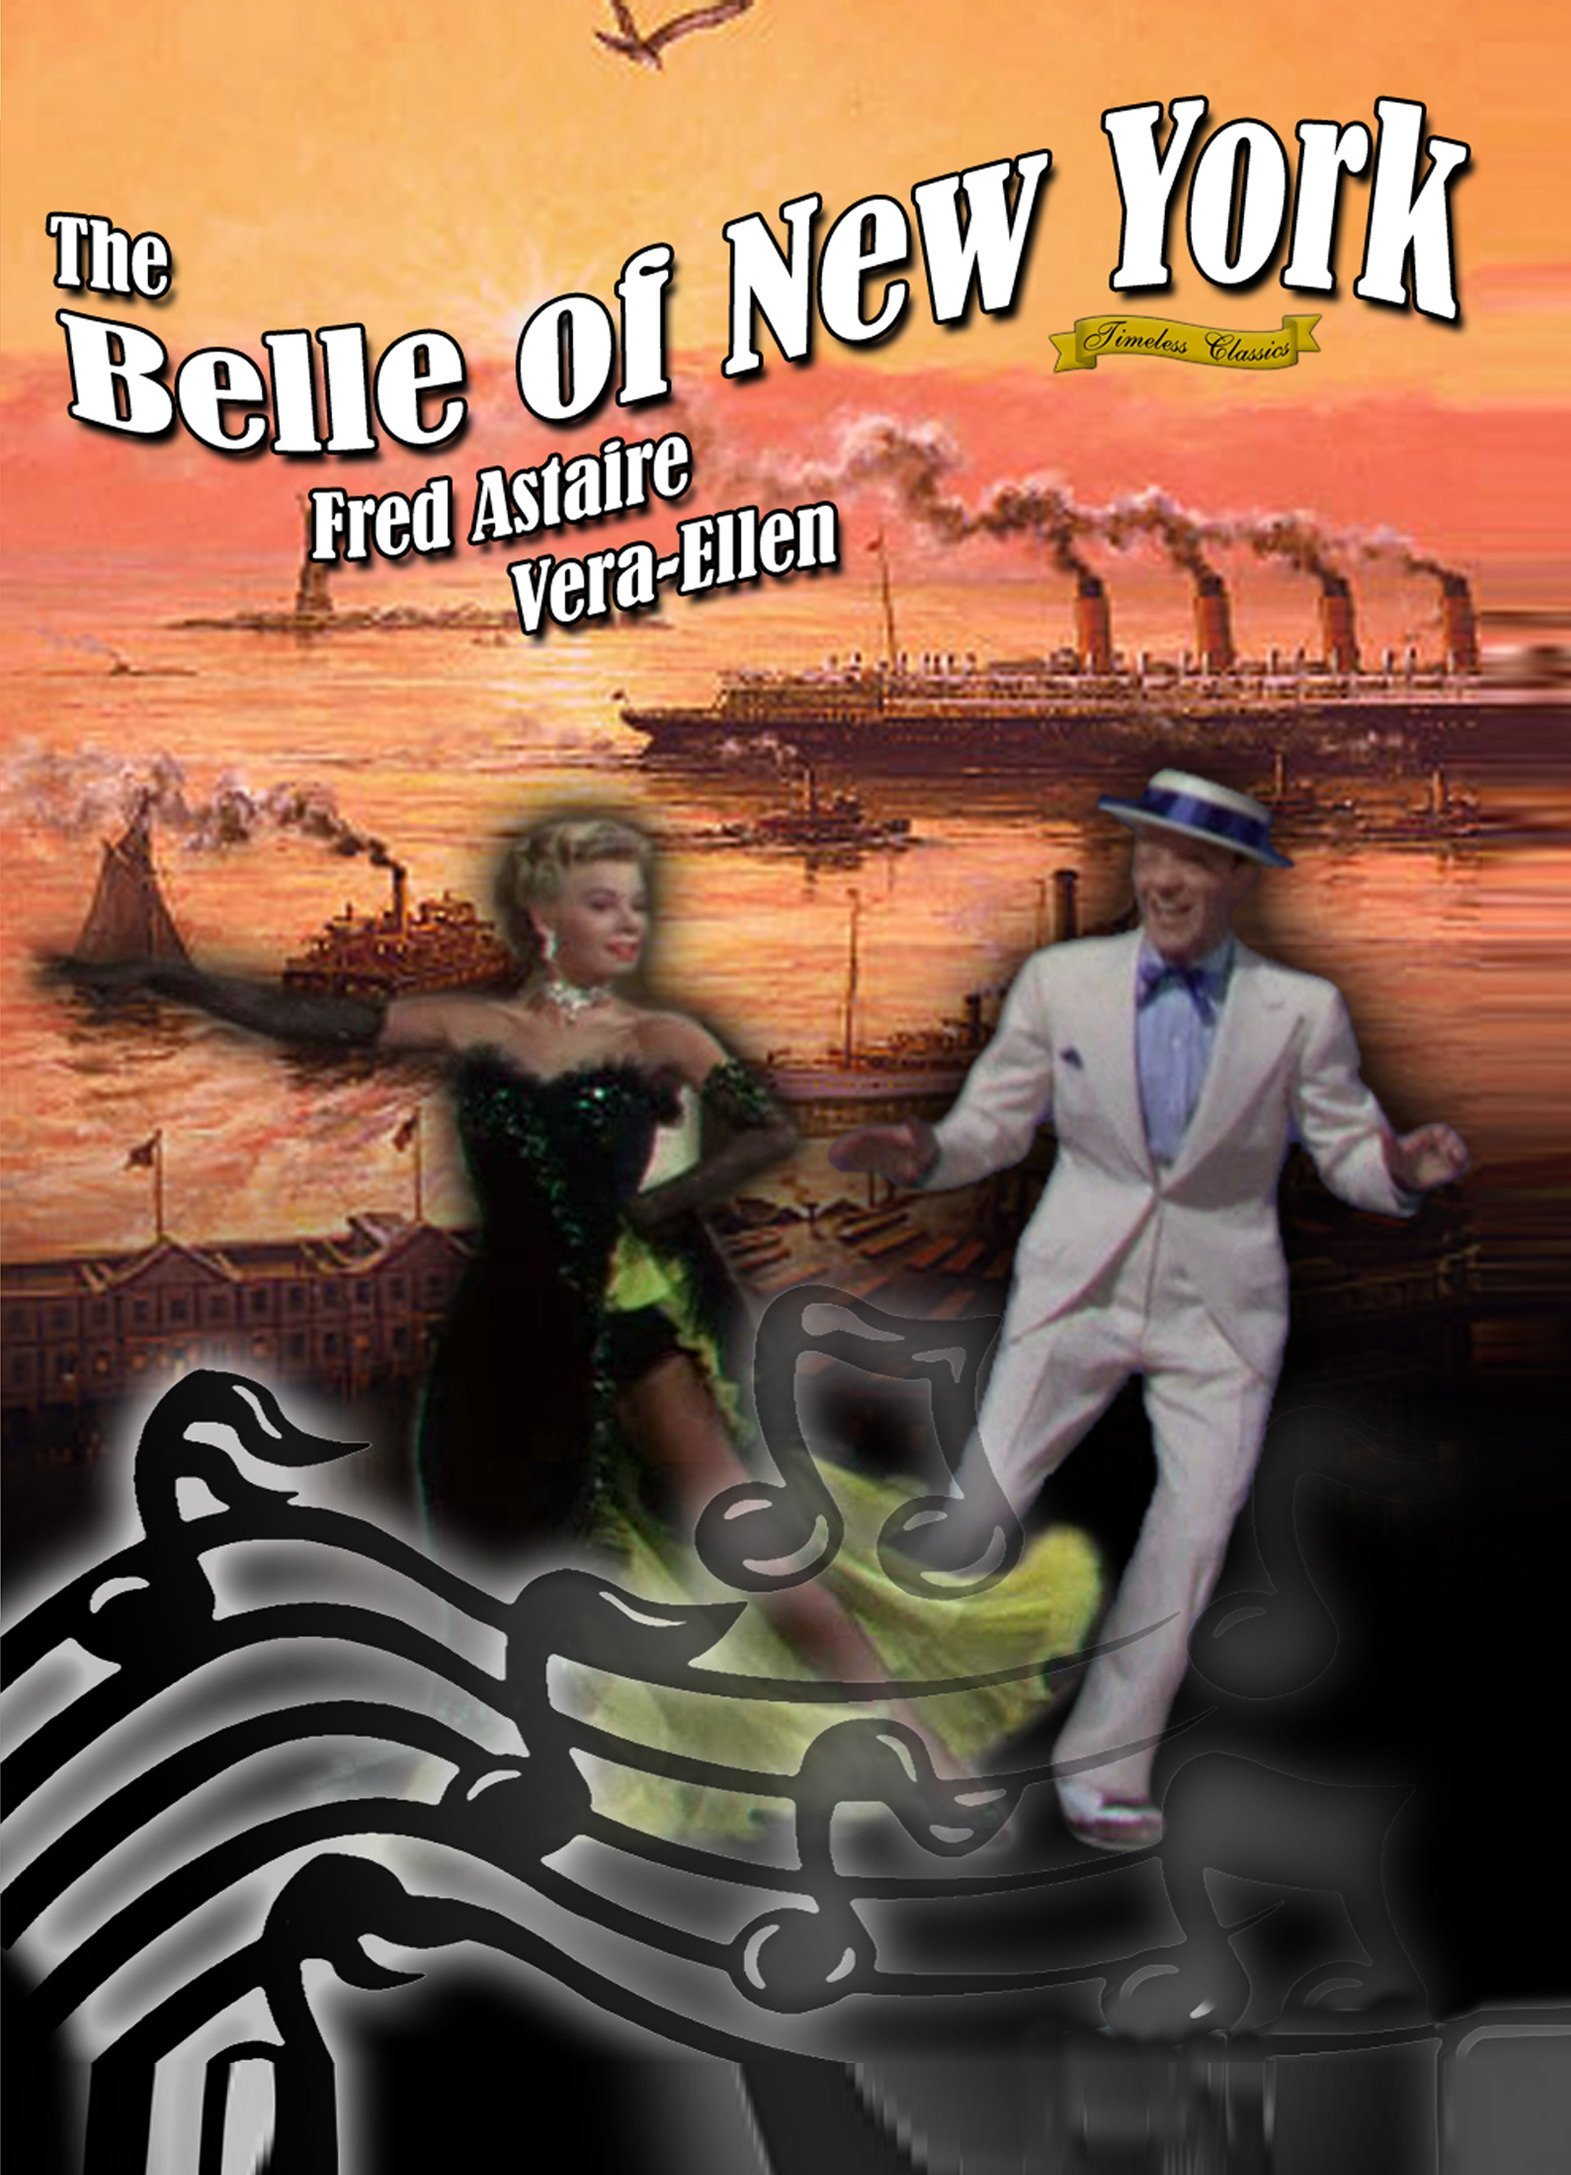 The Belle of New York (1952) on Amazon Prime Video UK